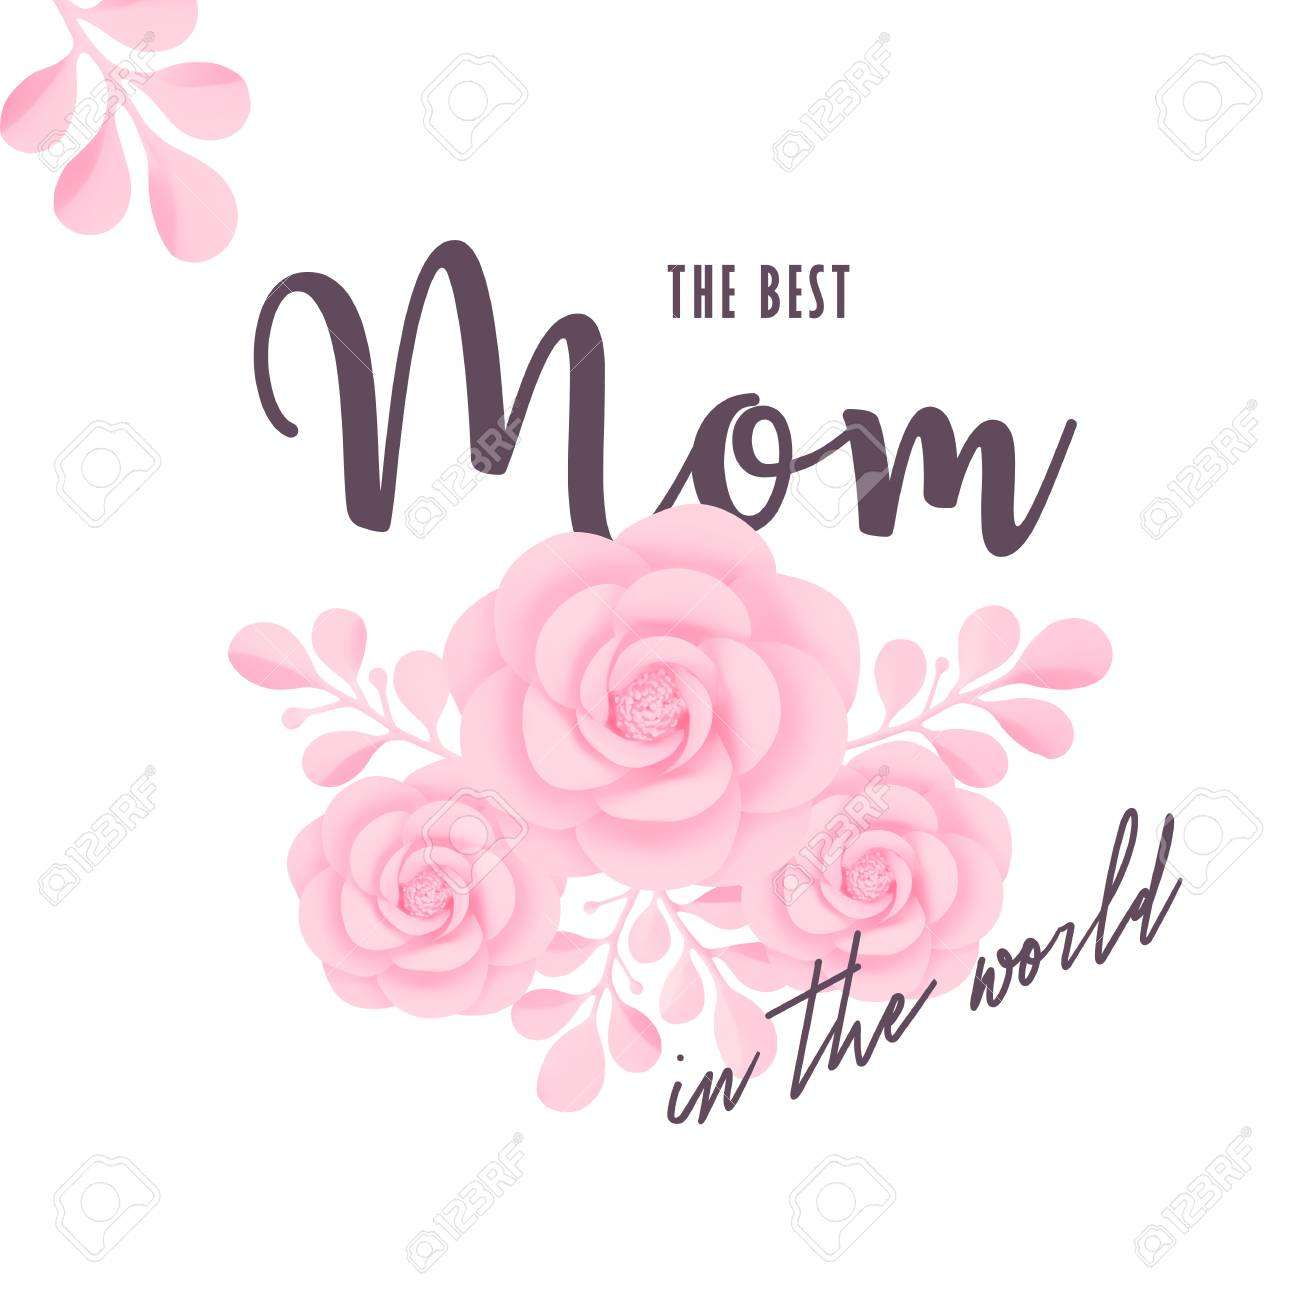 The Best Mom In World Vector Illustration MotheraEURTMs Day